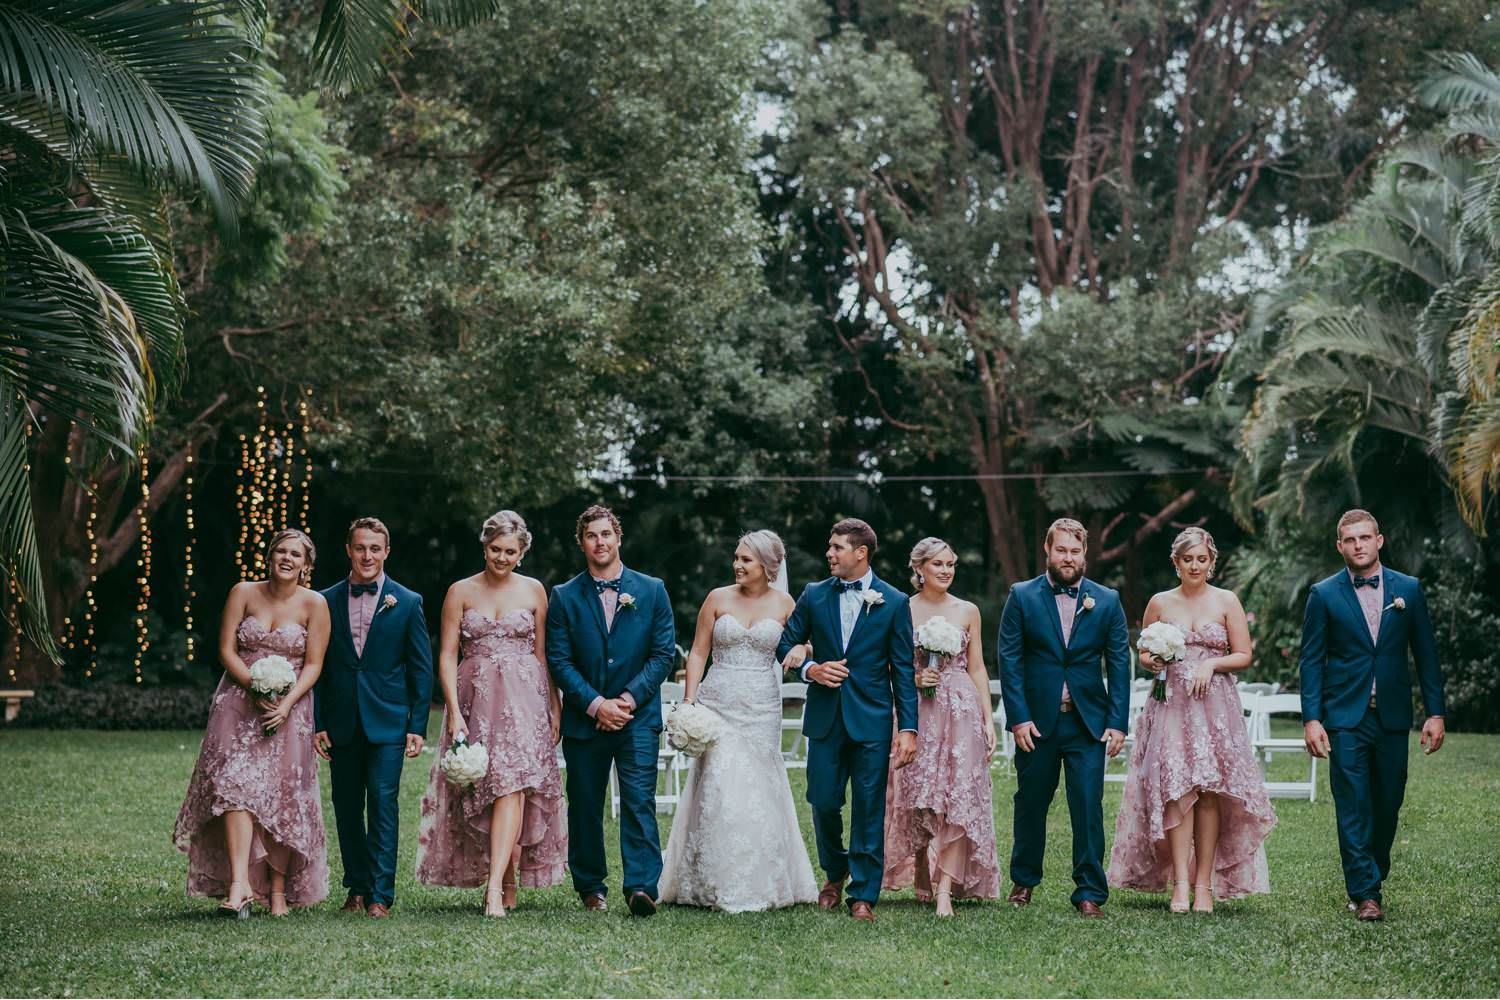 Wedding Party walking together